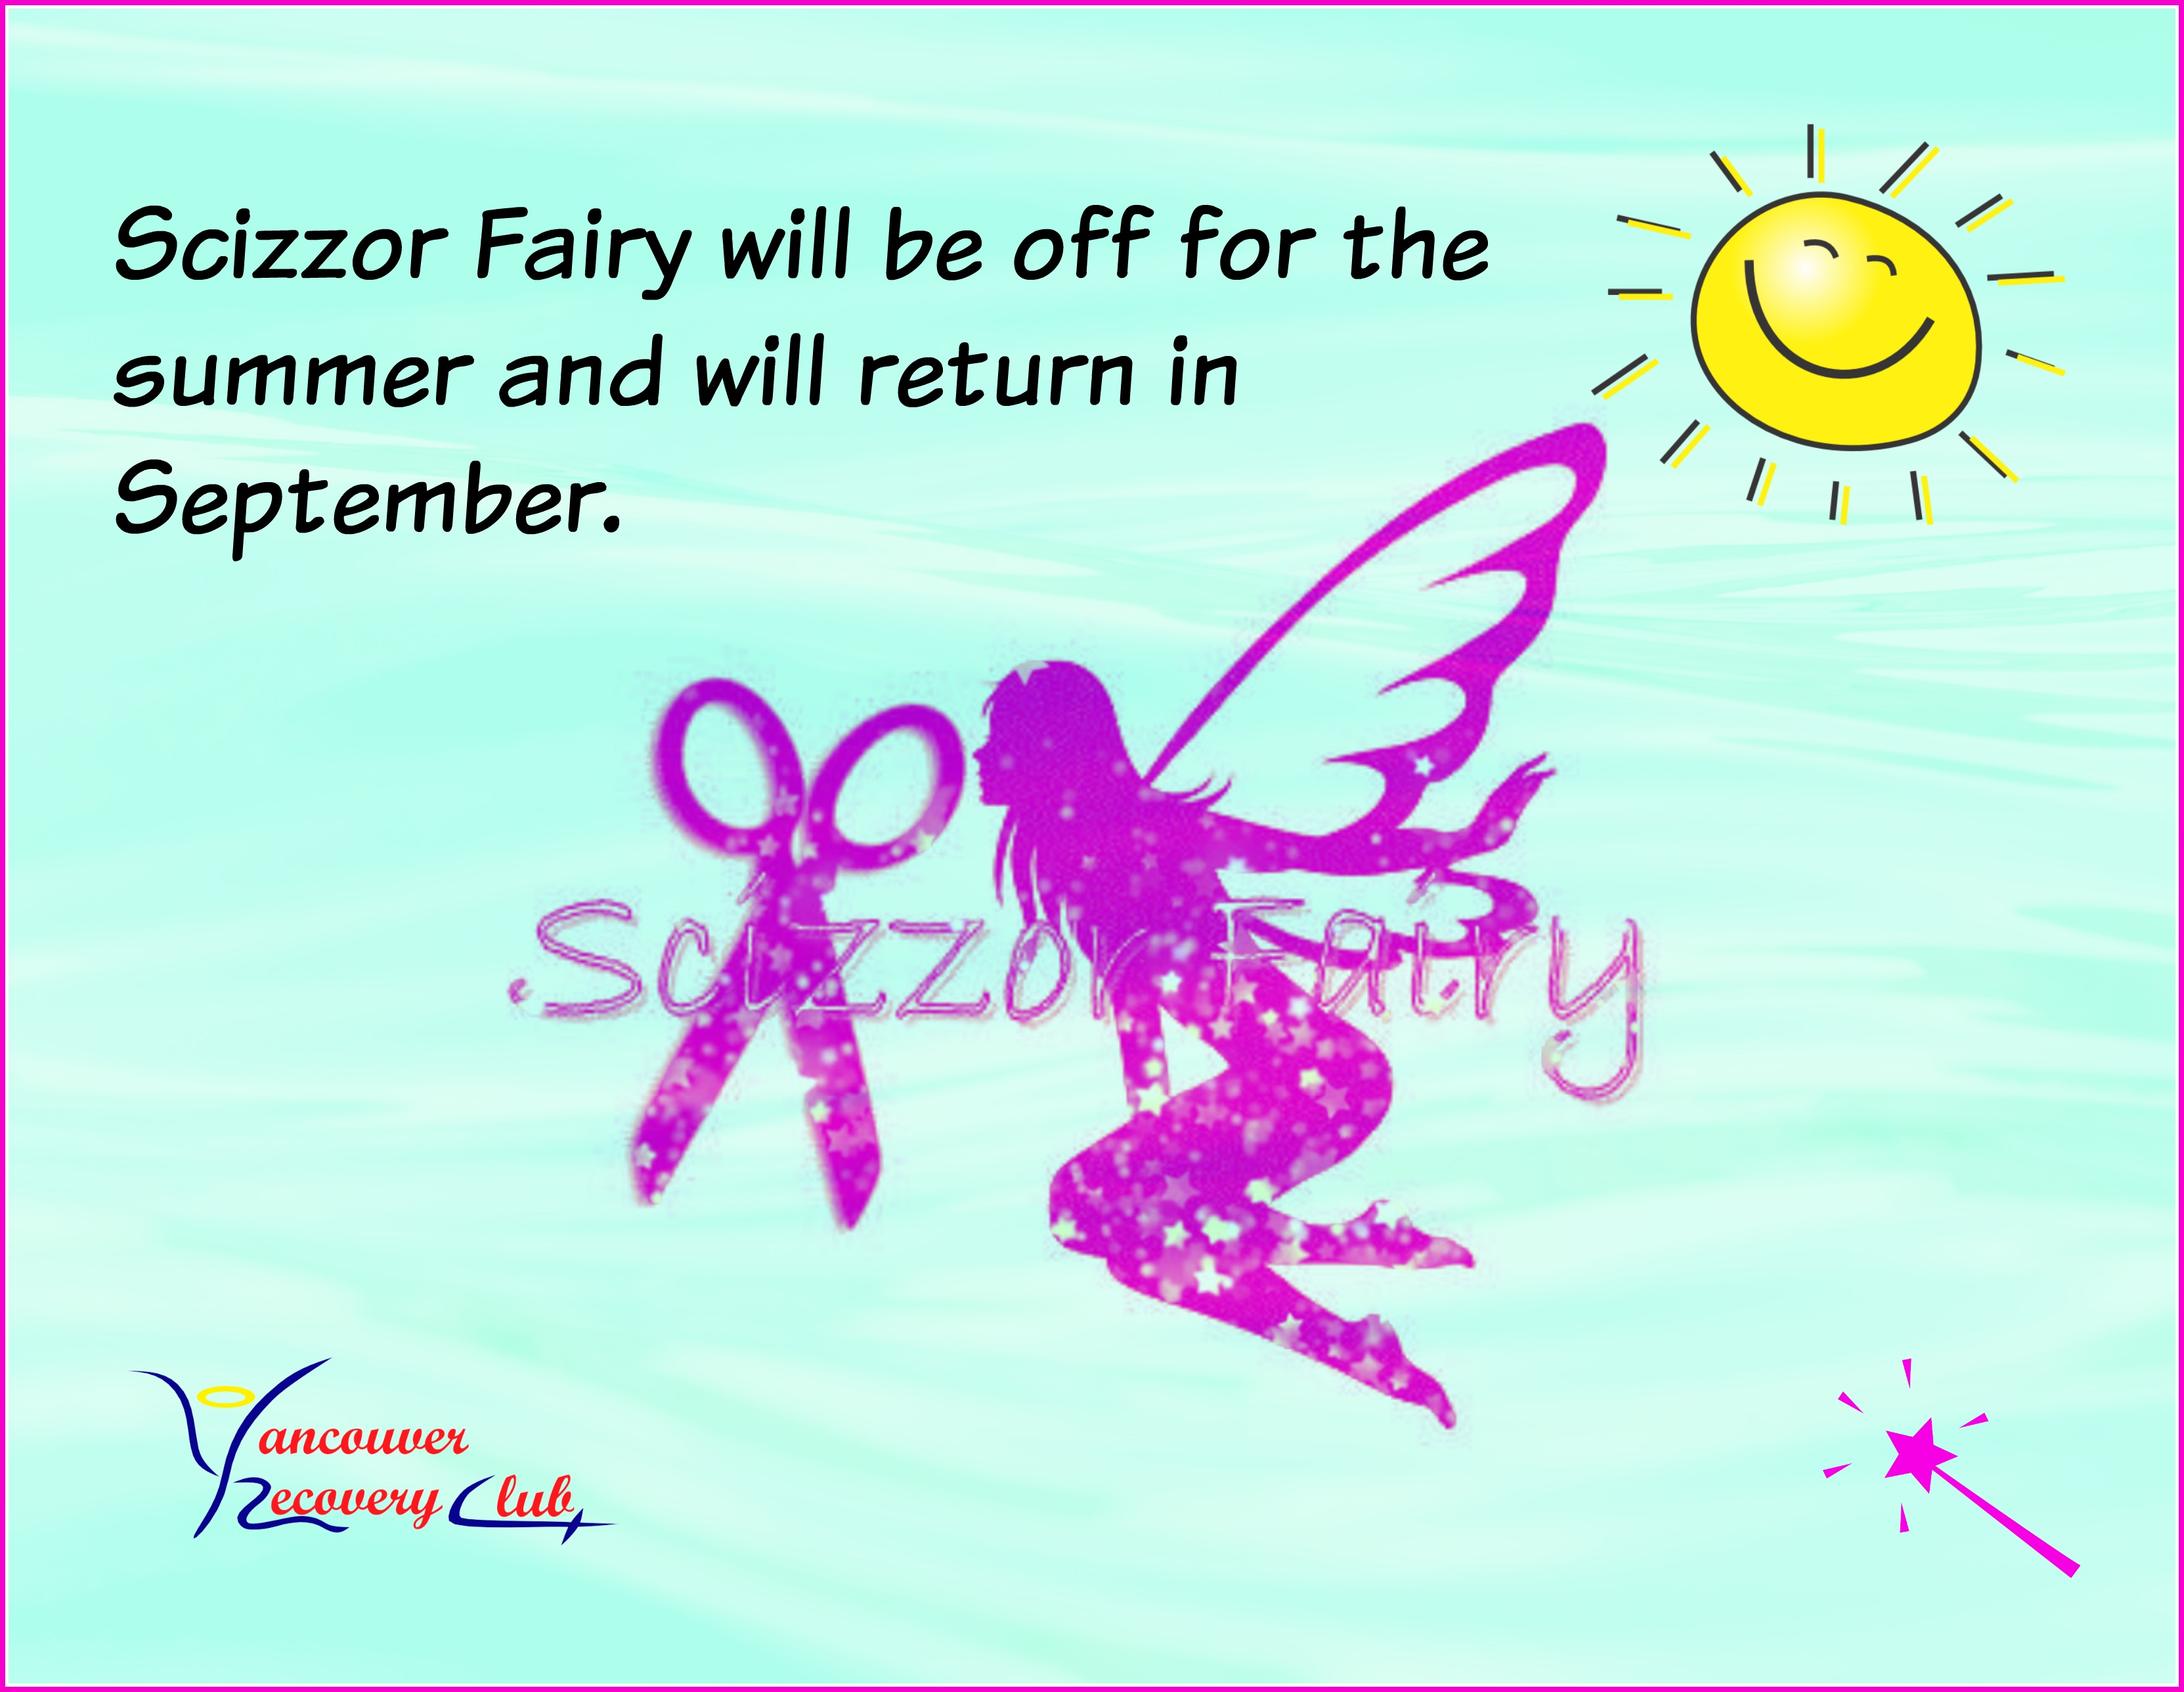 Scizzor Fairy Free Haircut Program Vancouver Recovery Club